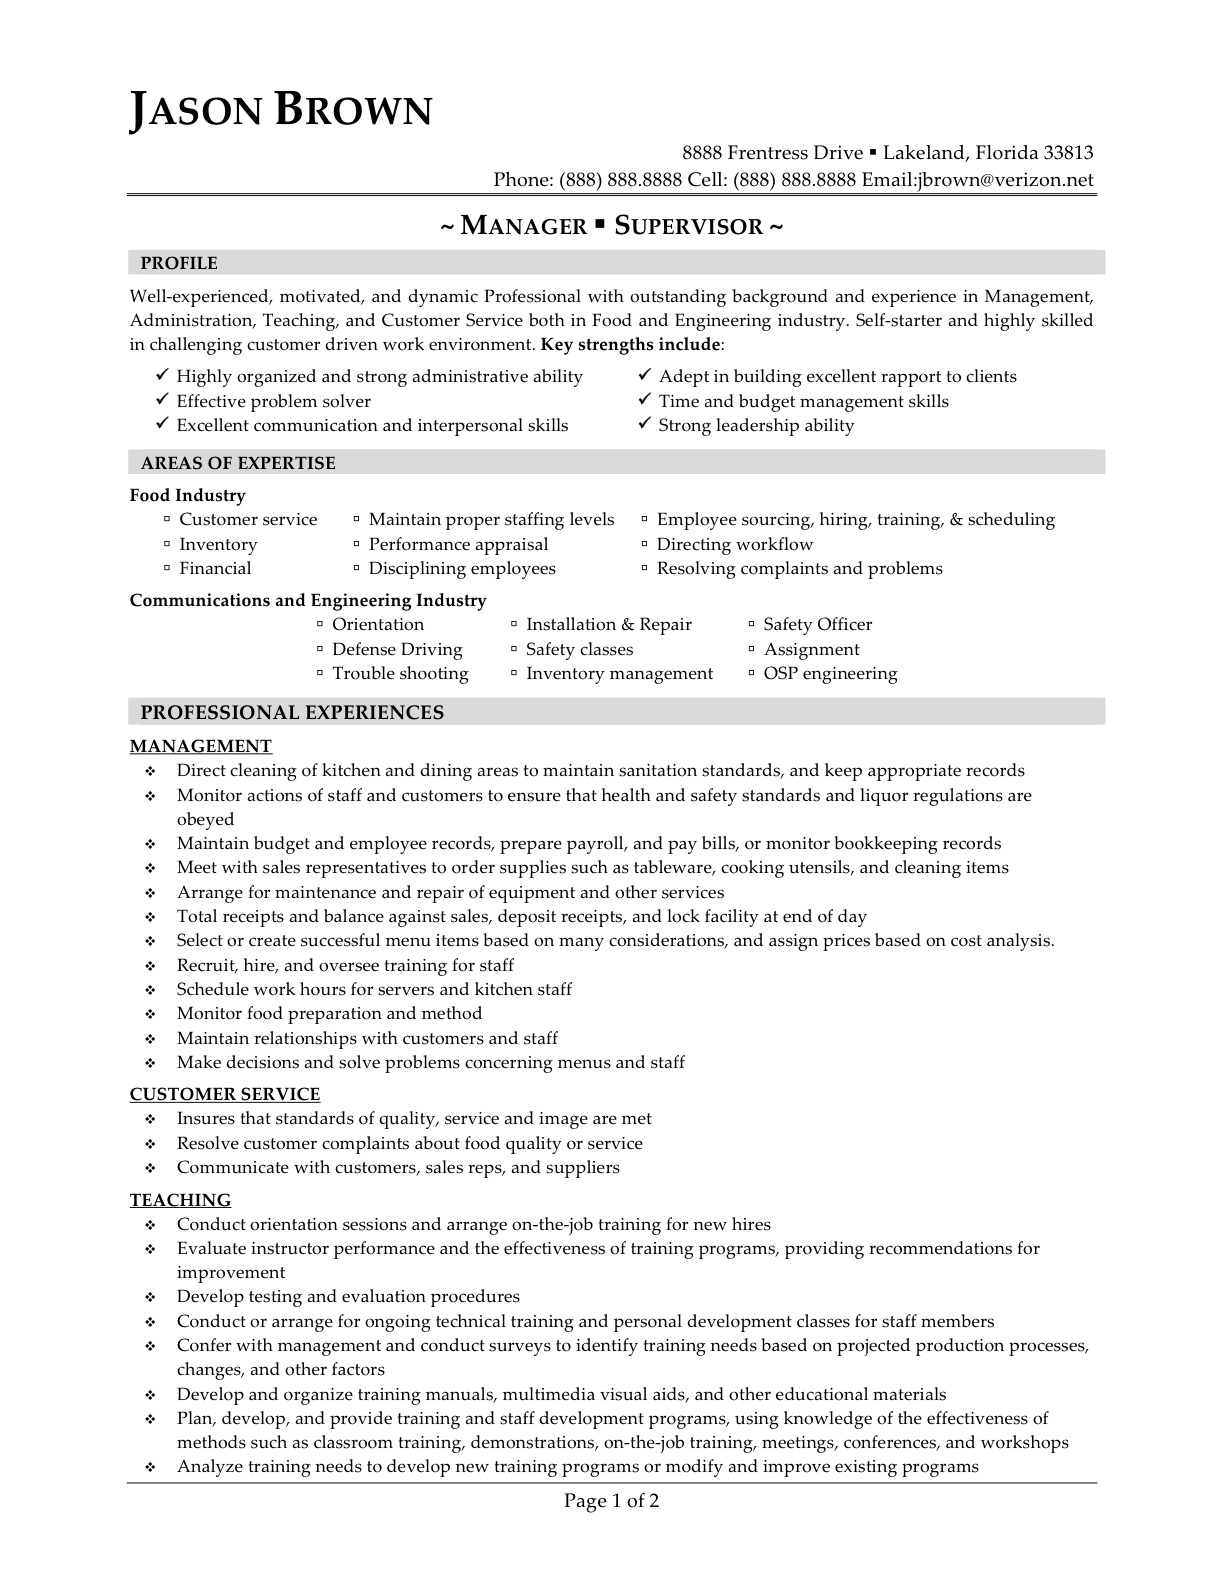 food service director resumes template food service director resumes sample assistant manager resume - Sample Resume For Restaurant Manager